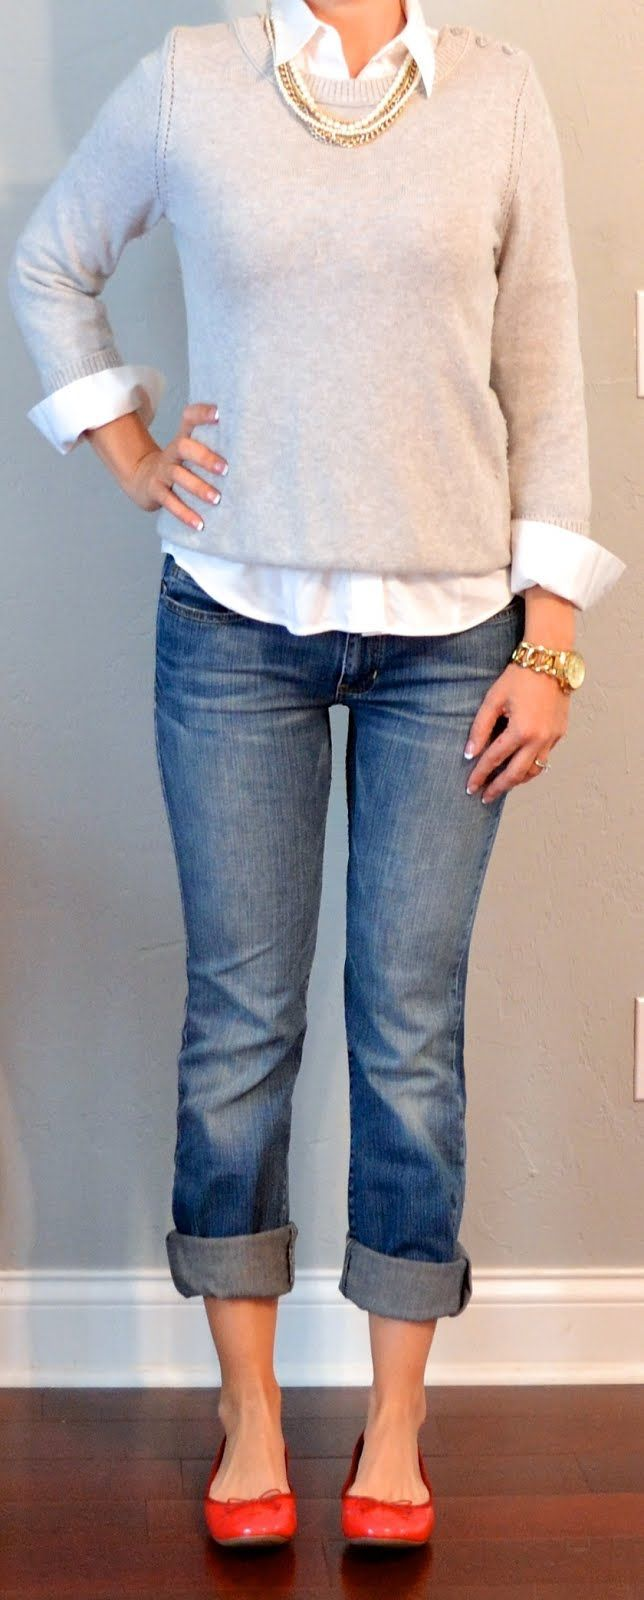 Outfit Posts: outfit post: white button down shirt, grey sweater, boyfriend jeans, red ballet flats LOVE THE JEANS